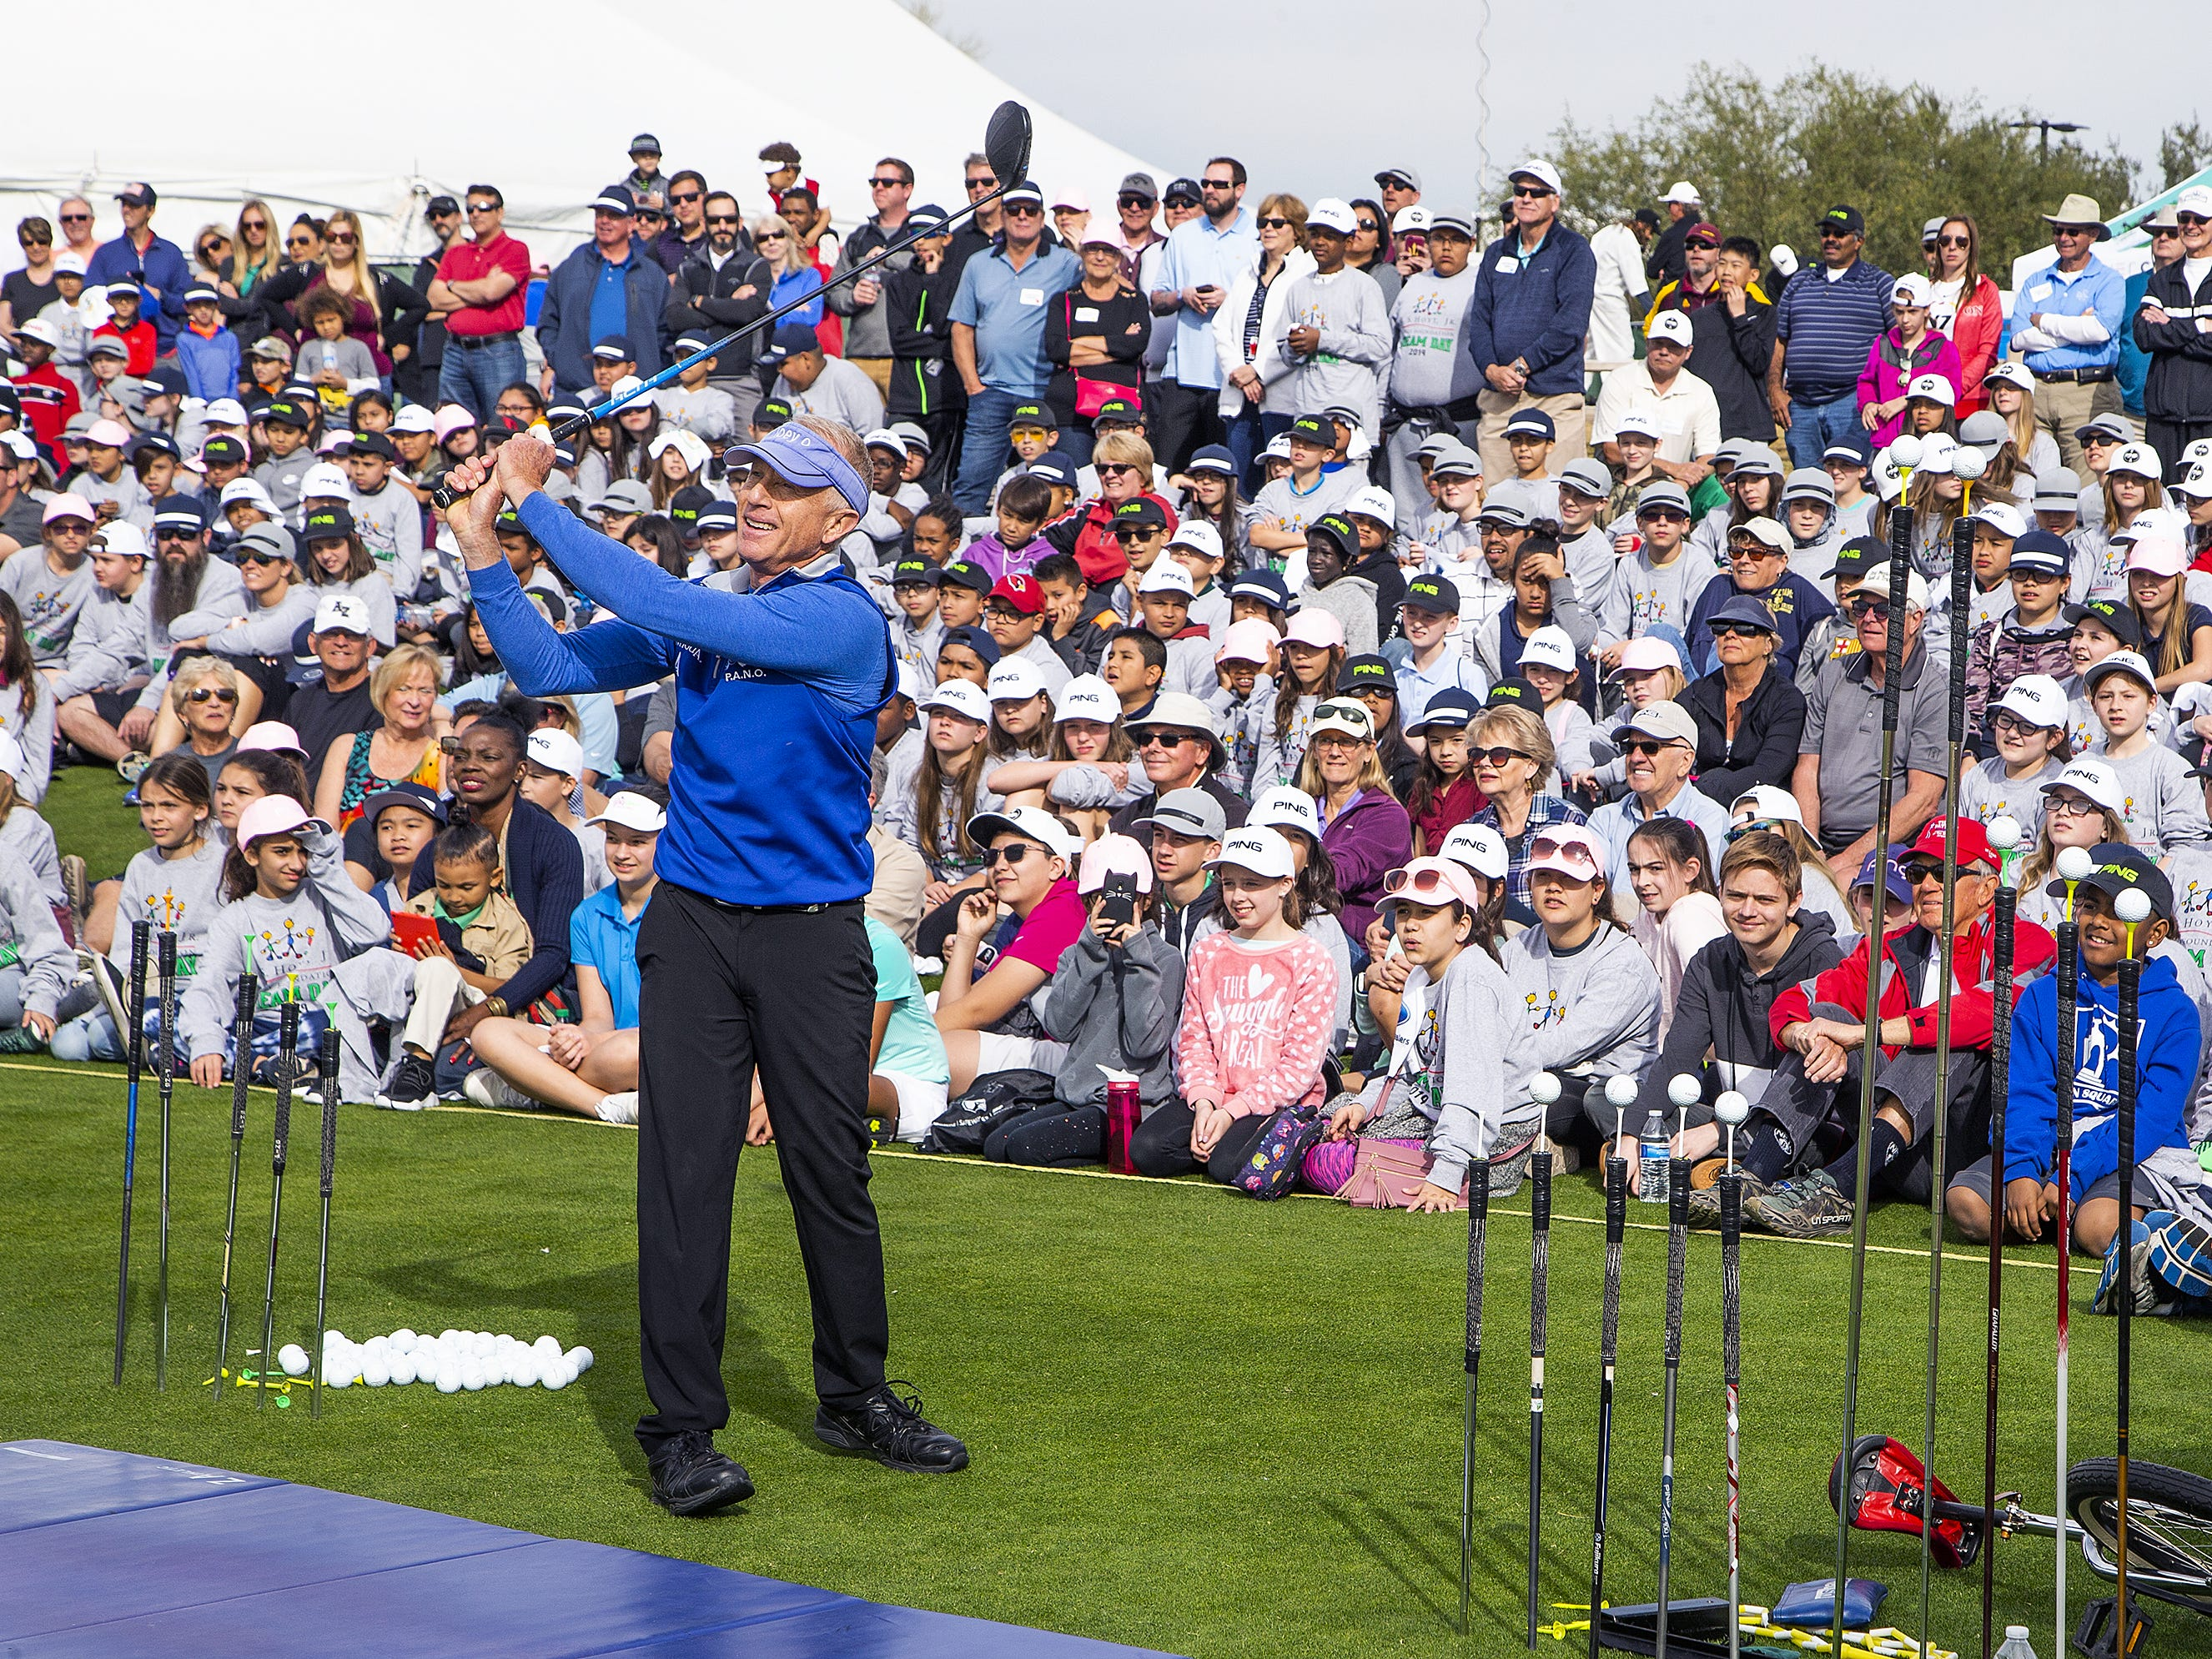 Joey O, a trick-shot golfer and motivational speaker, demonstrates his skills at the R.S. Hoyt Jr. Family Foundation Dream Day Junior Golf Clinic presented by PING at the Waste Management Phoenix Open at the TPC Scottsdale, Tuesday, January 29, 2019.